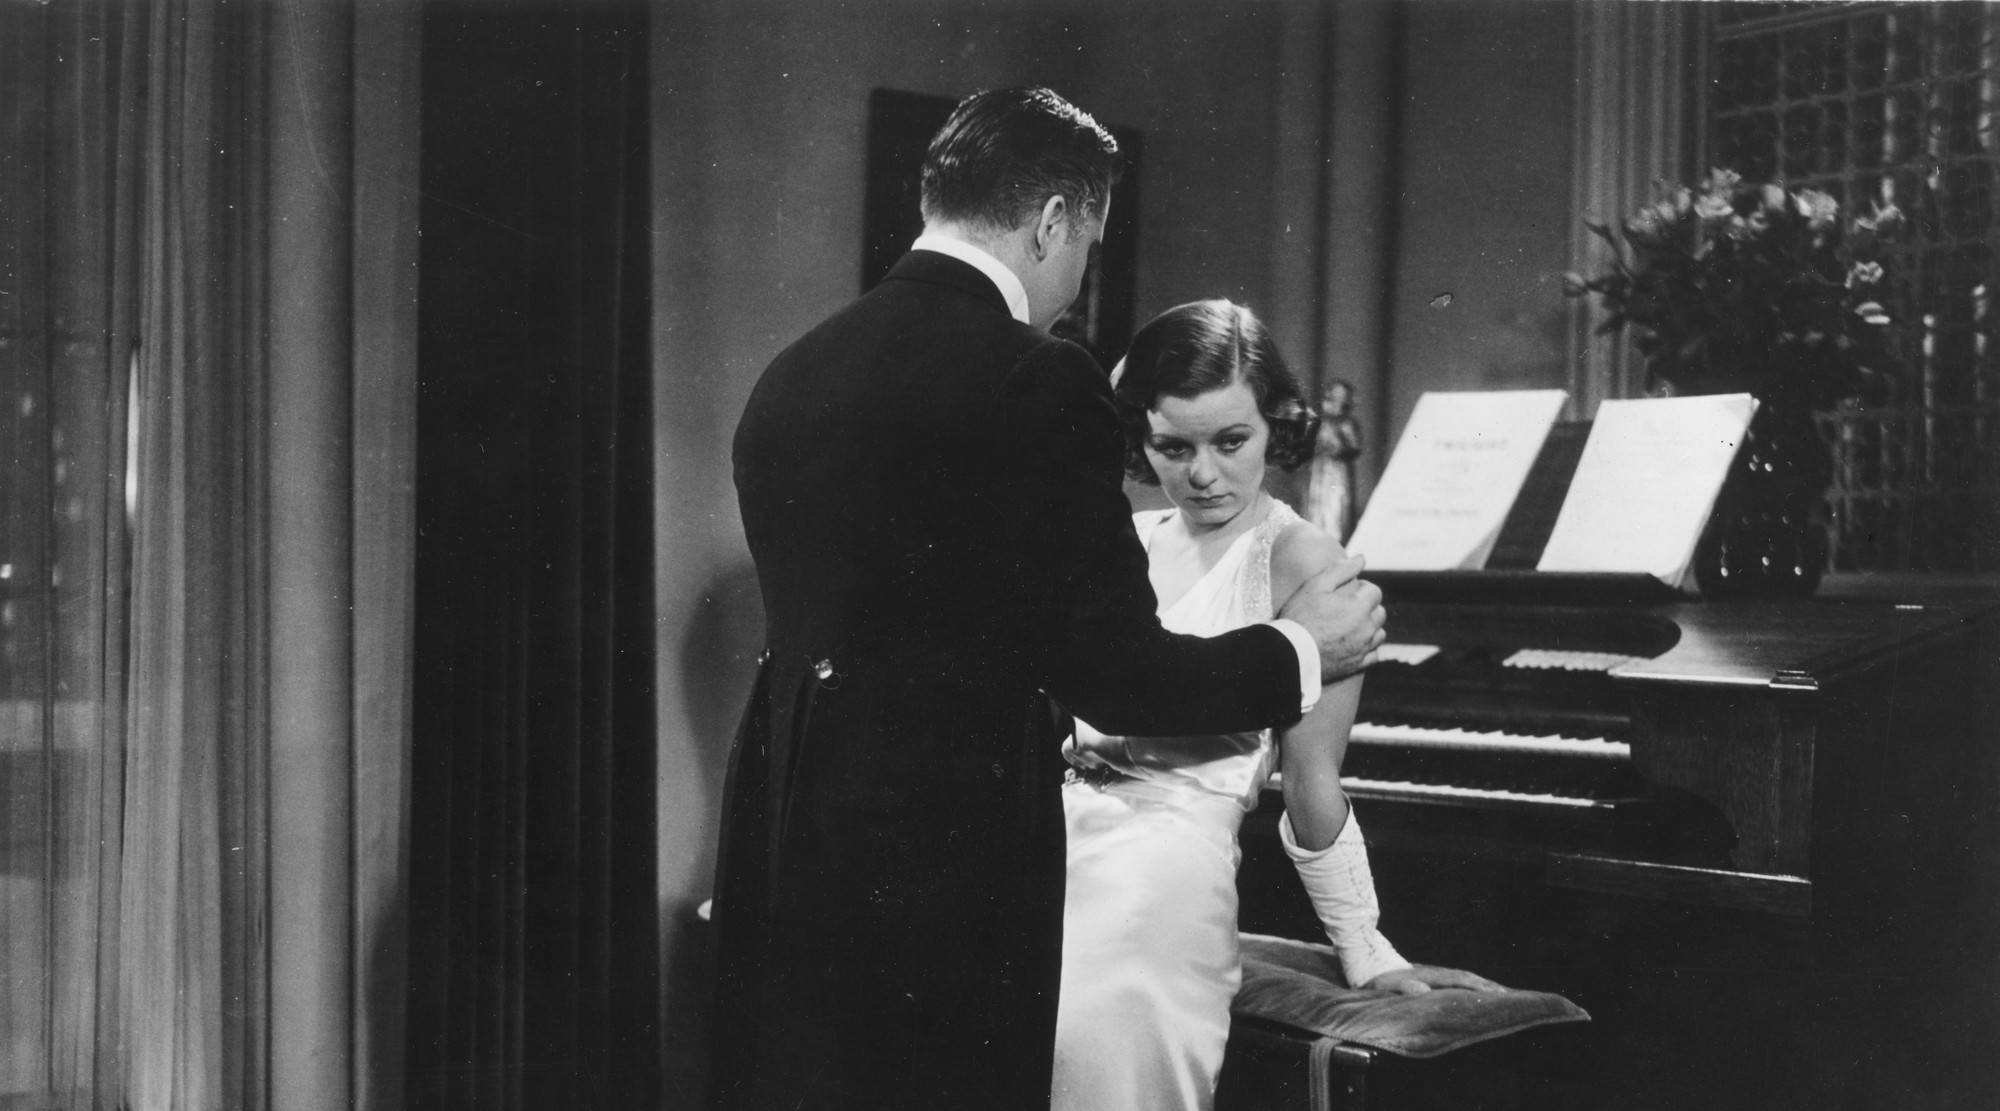 Only Yesterday. 1933. USA. Directed by John M. Stahl